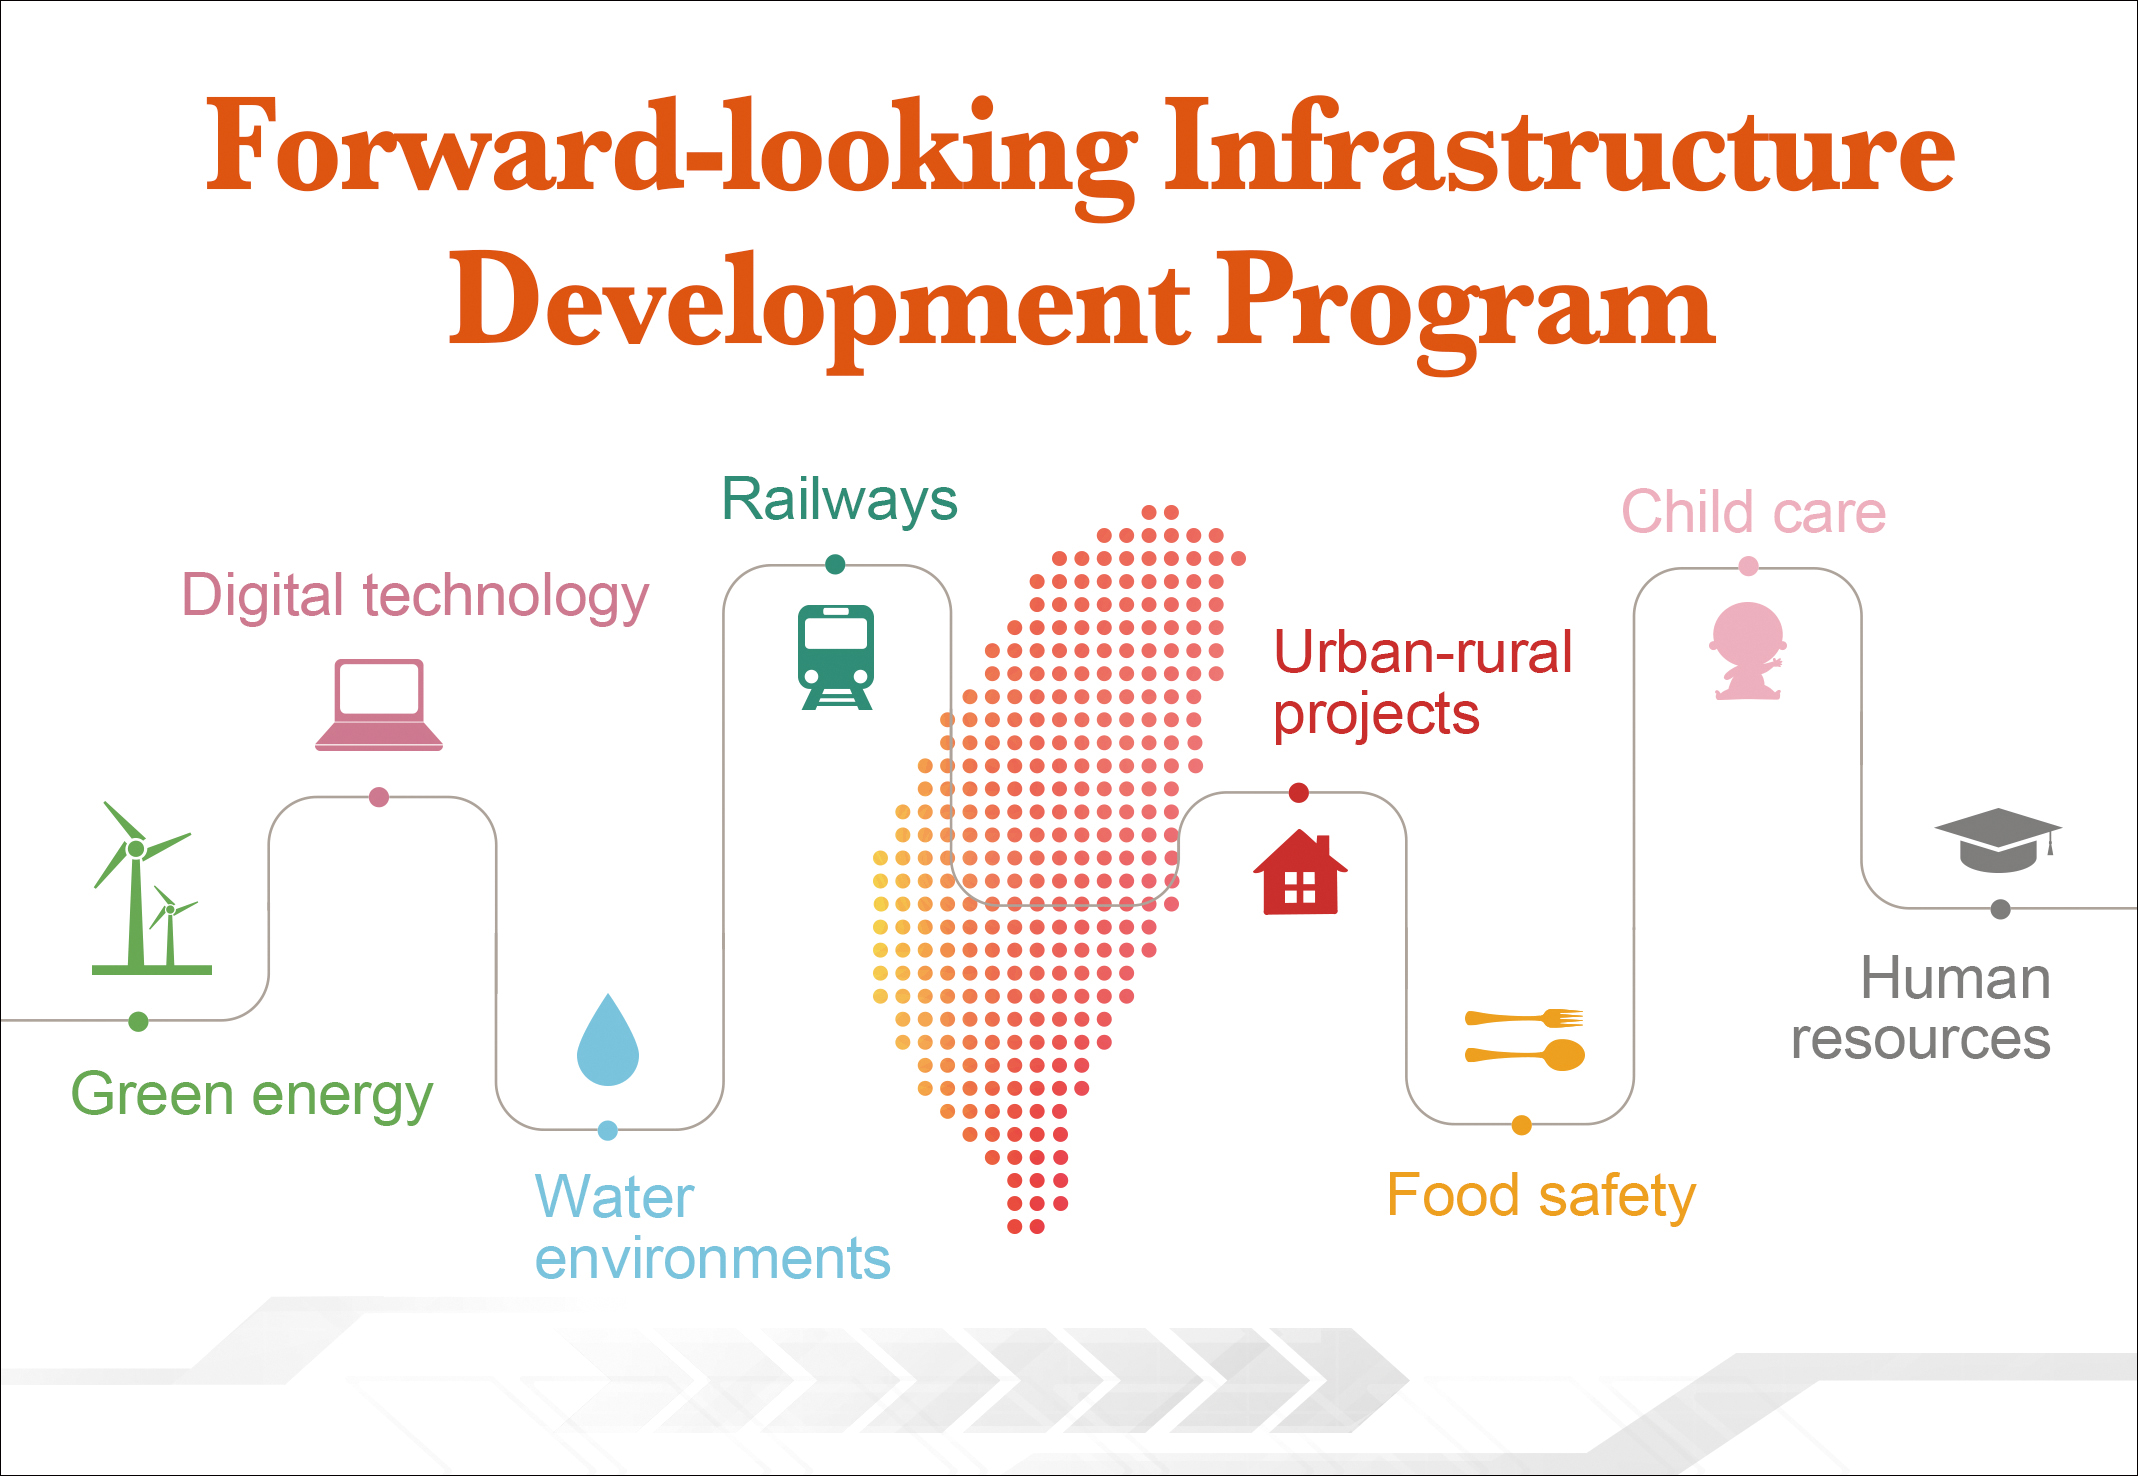 Forward-looking Infrastructure Development Program.jpg